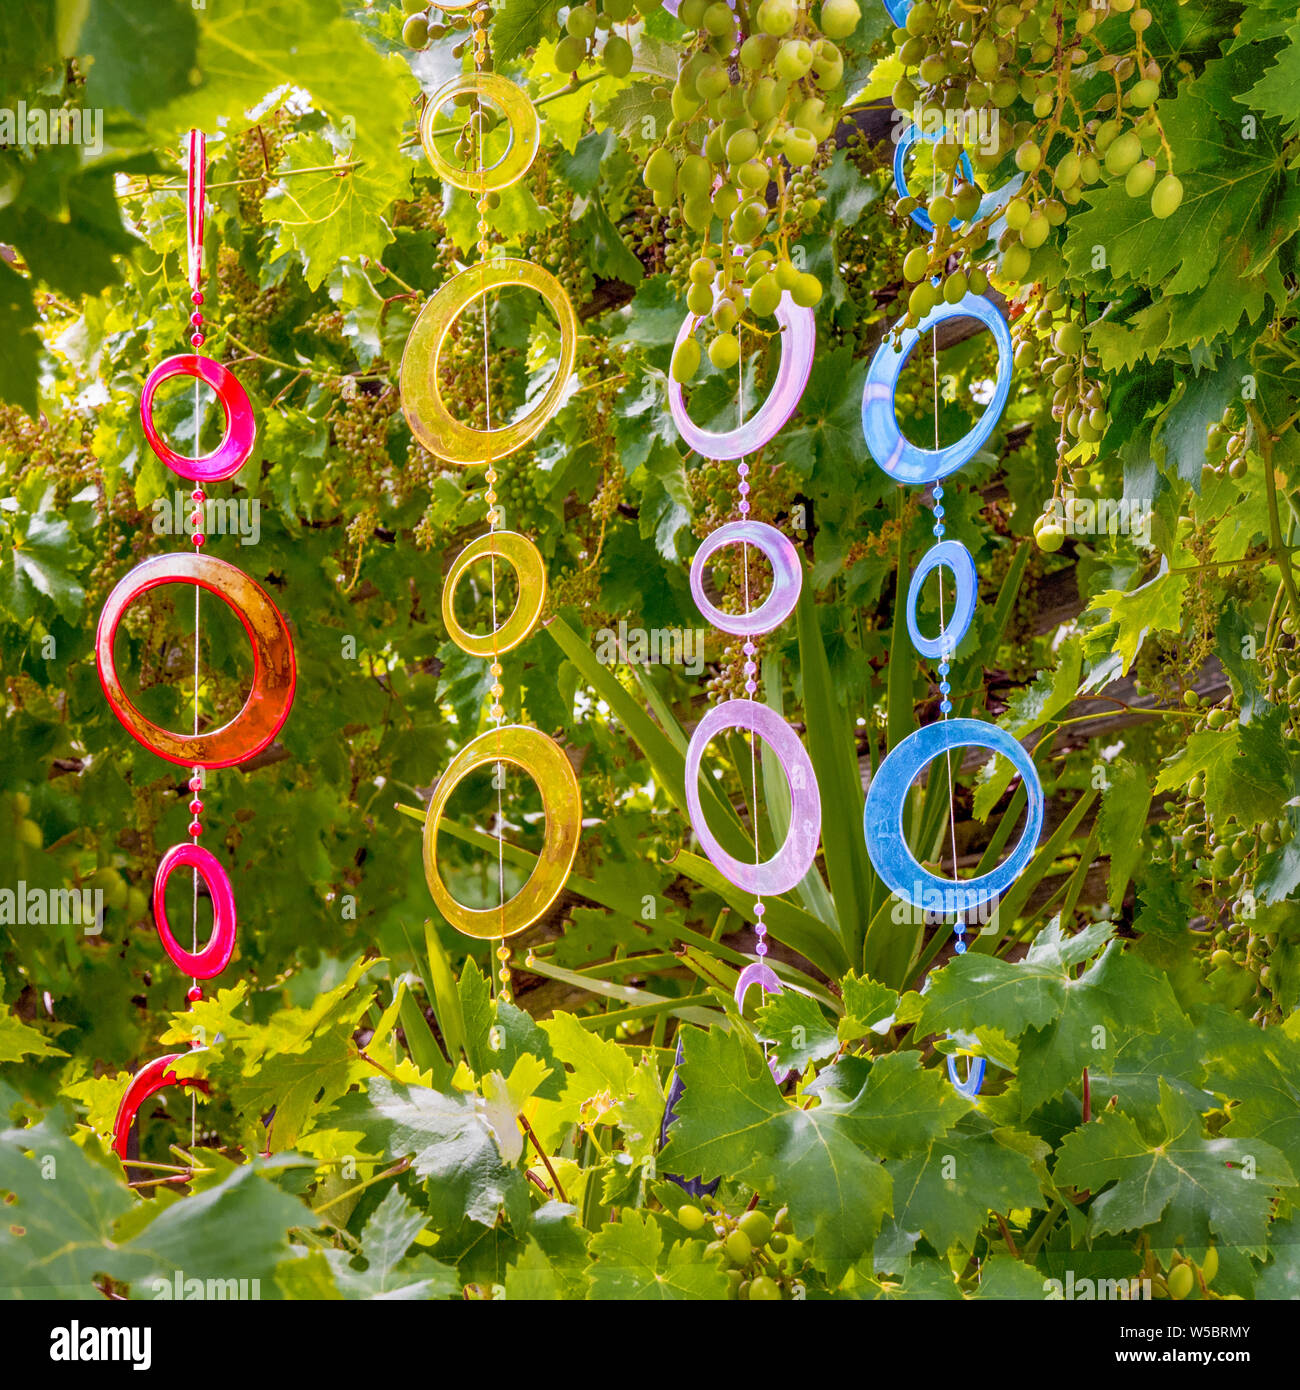 Glass Decoration With Bunch Of Green Grapes On Background Colorful Glass As Exterior Decoration For Cafe Restaurant Traveling Background Sunny Summer Days In Park Summer Holidays Background Stock Photo Alamy